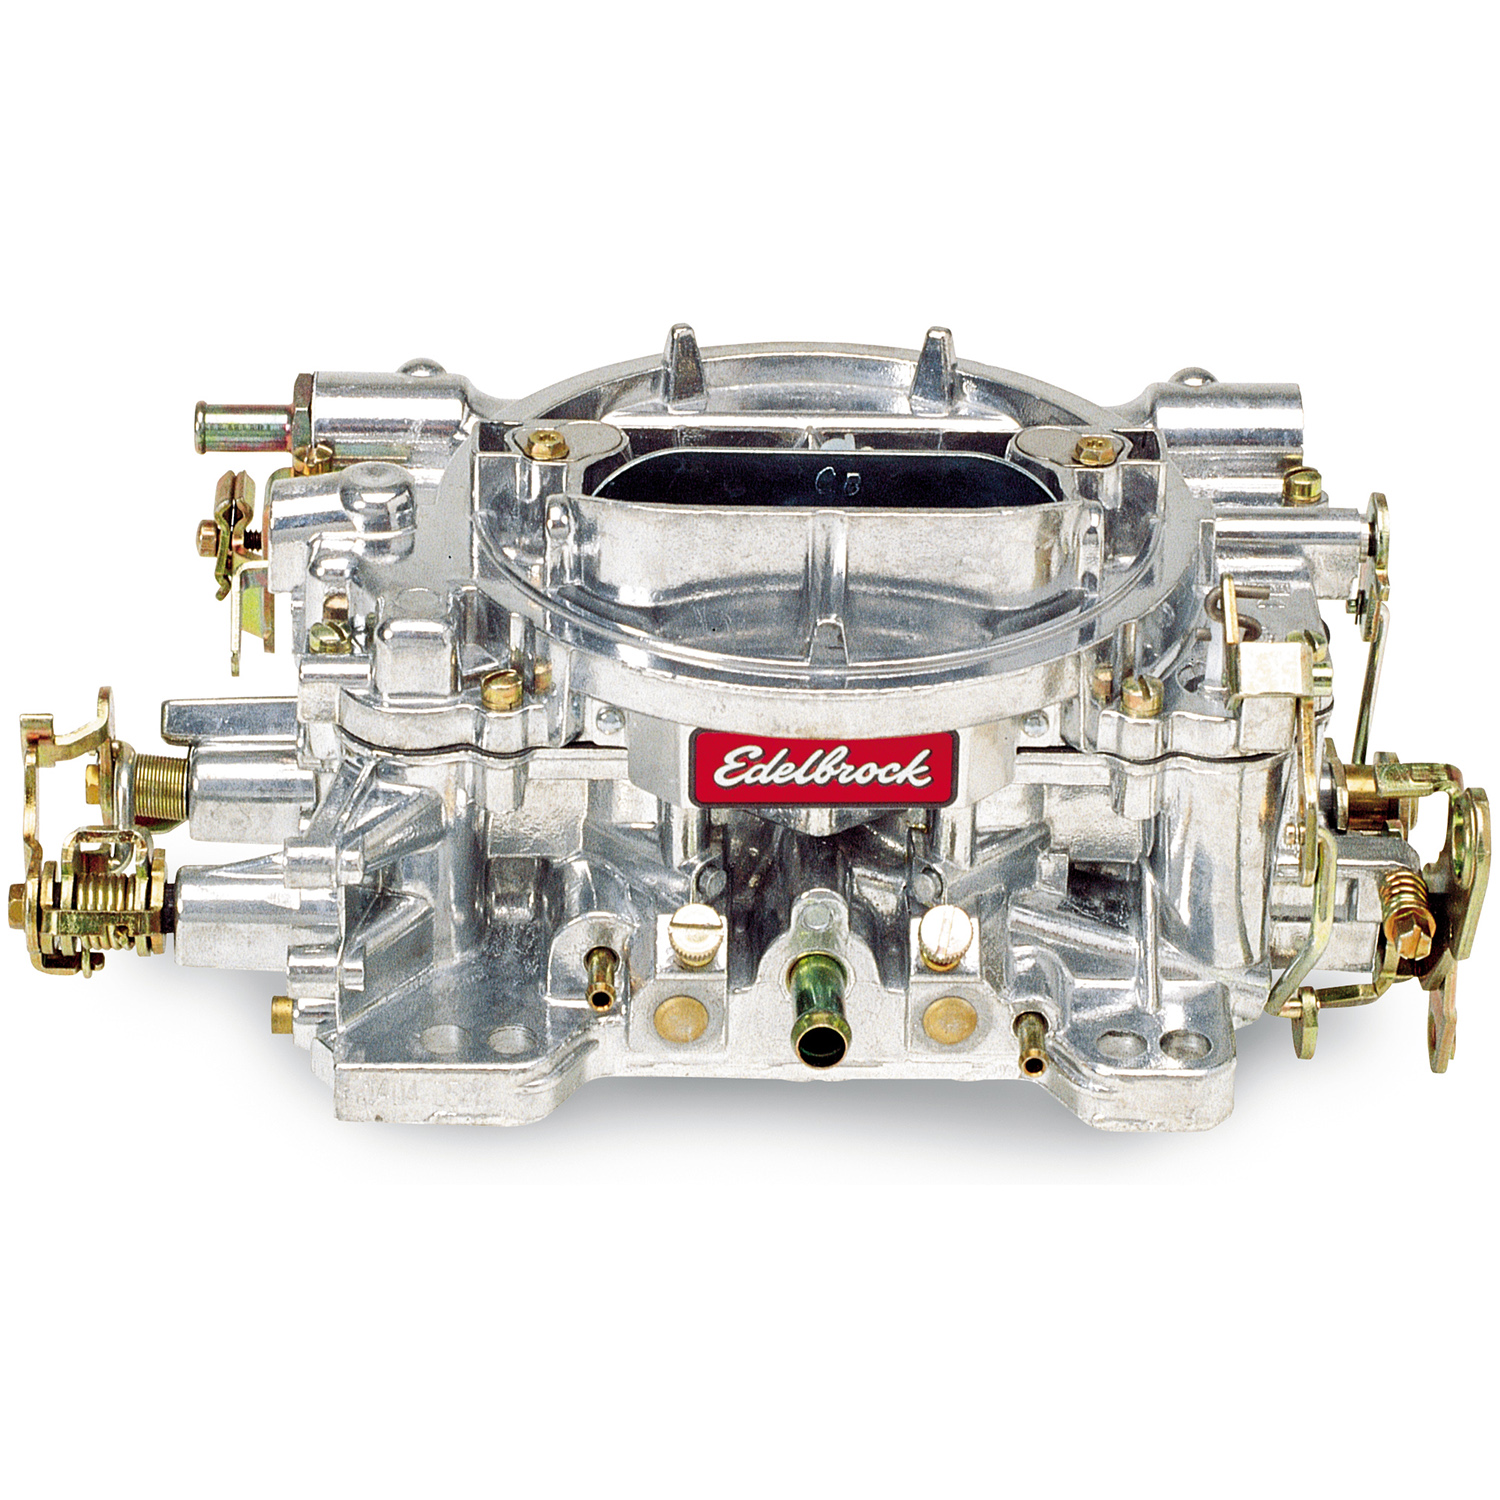 How To Adjust Edelbrock Carb With Manual Choke